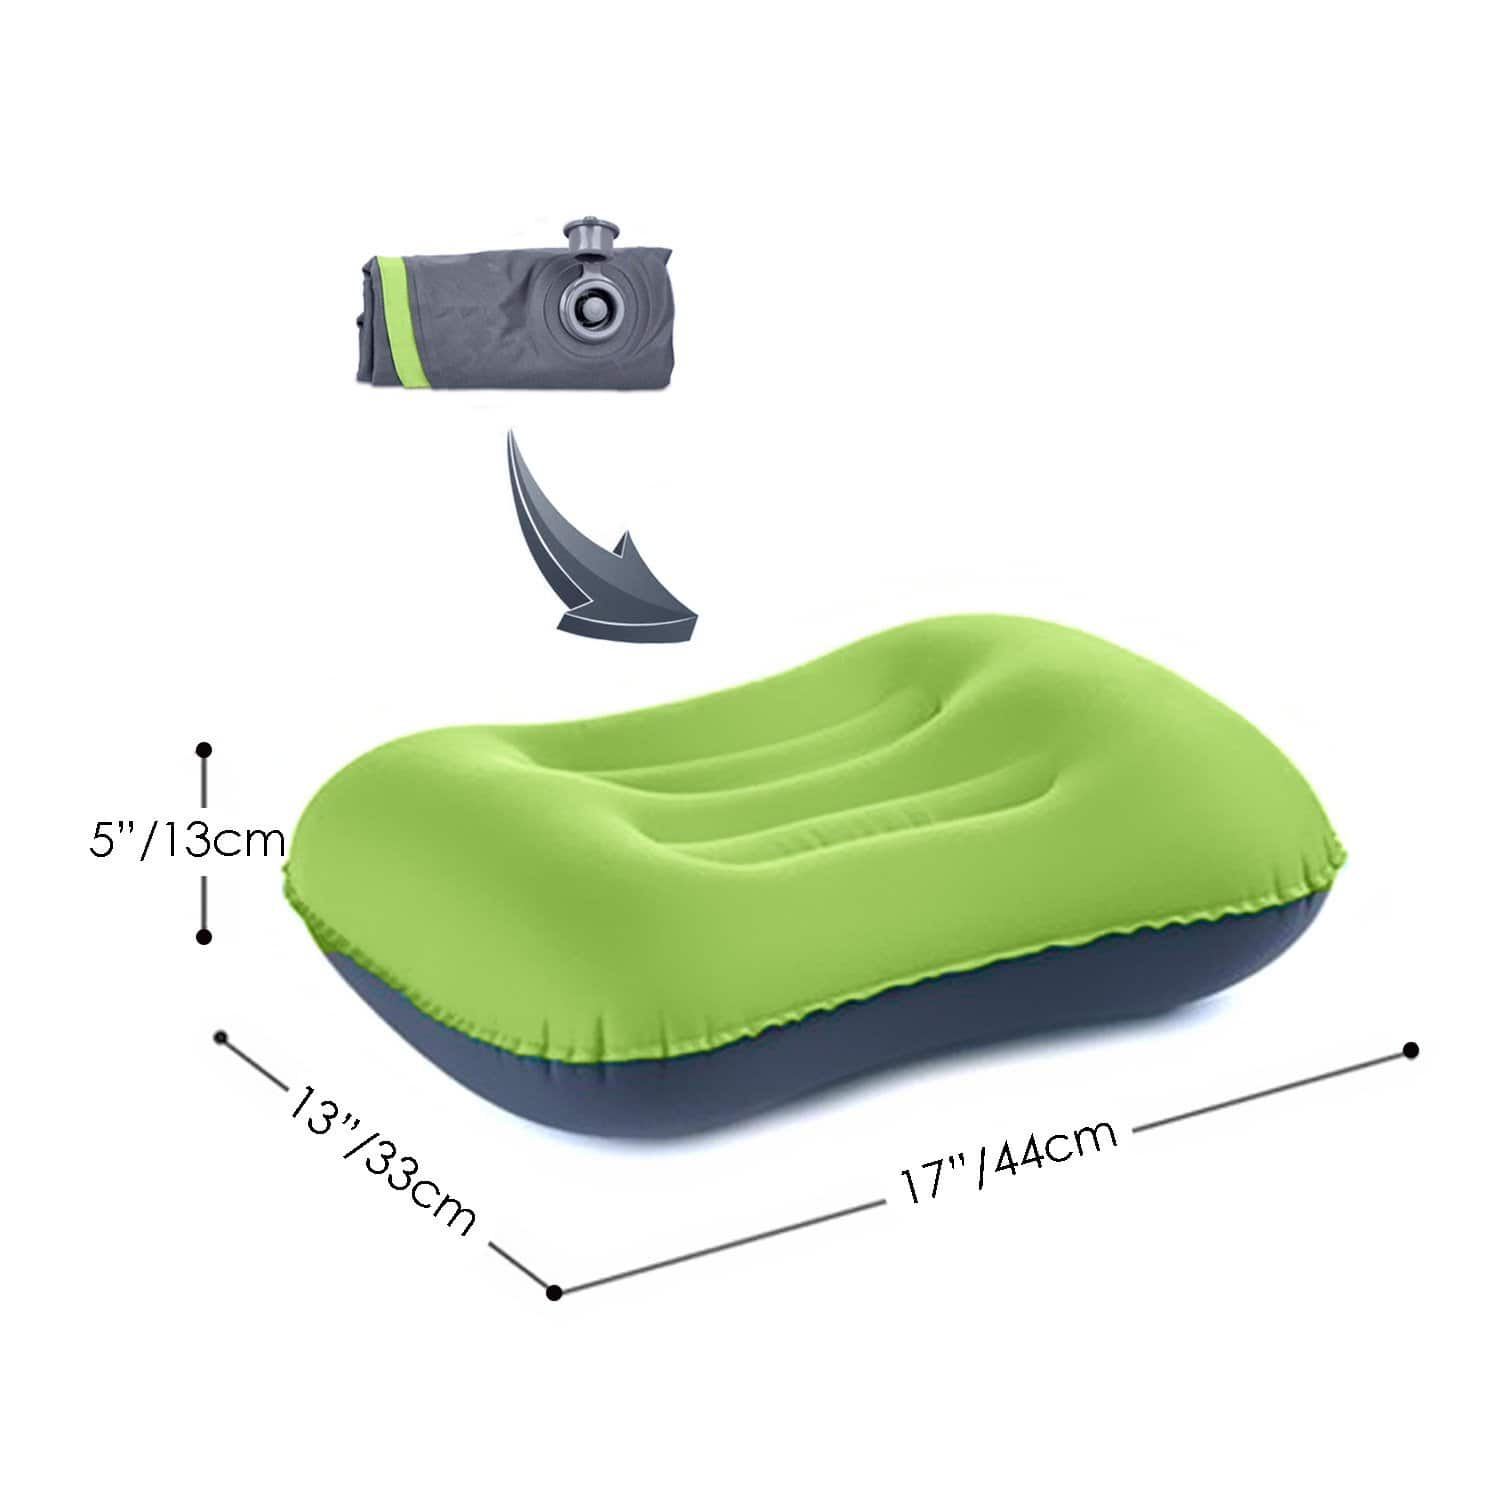 Inflatable Camping Pillow, $8.89 AC/Shipping @ Amazon